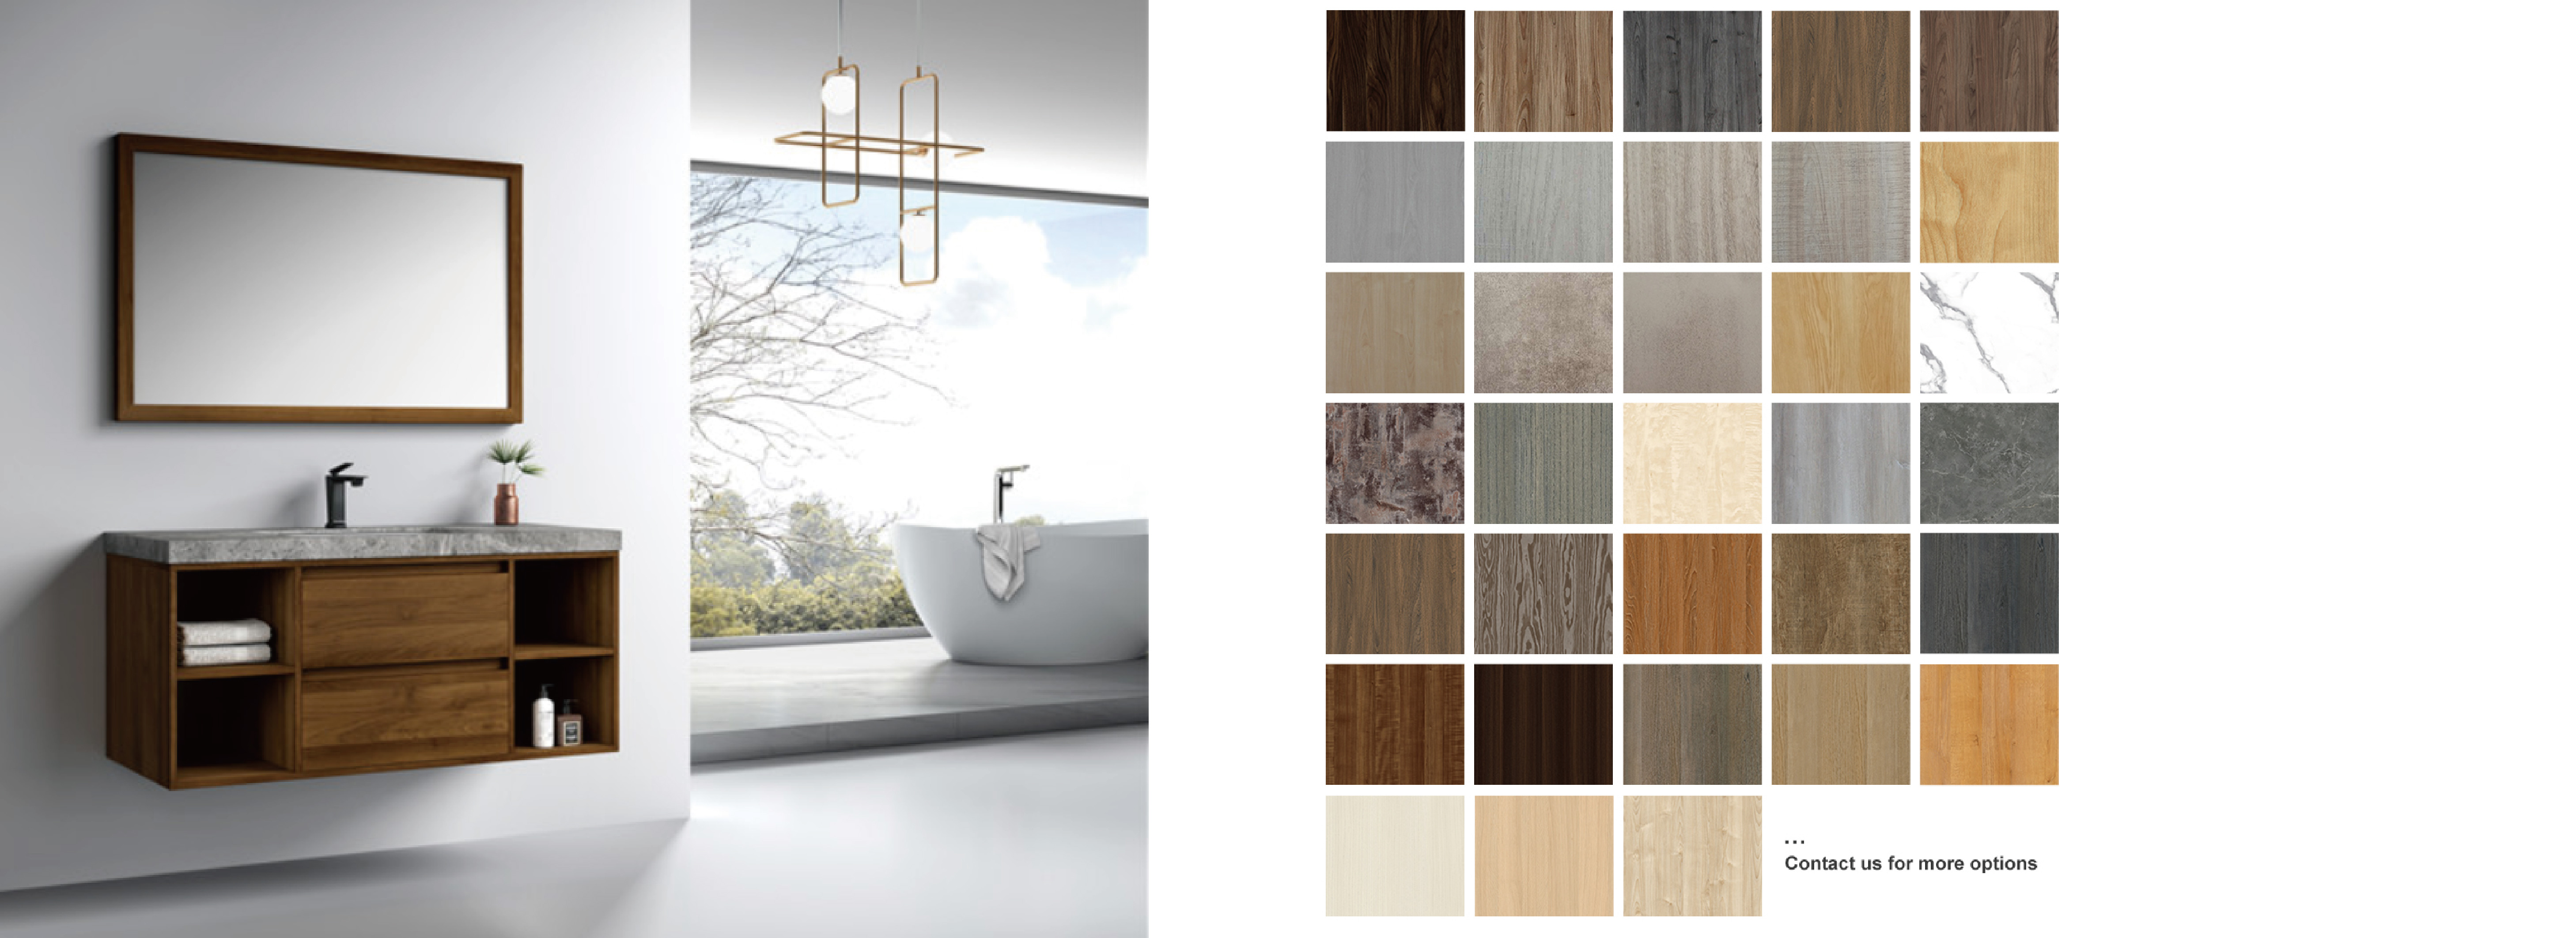 Industry Style Bathroom Cabinet Could Choose Color-01